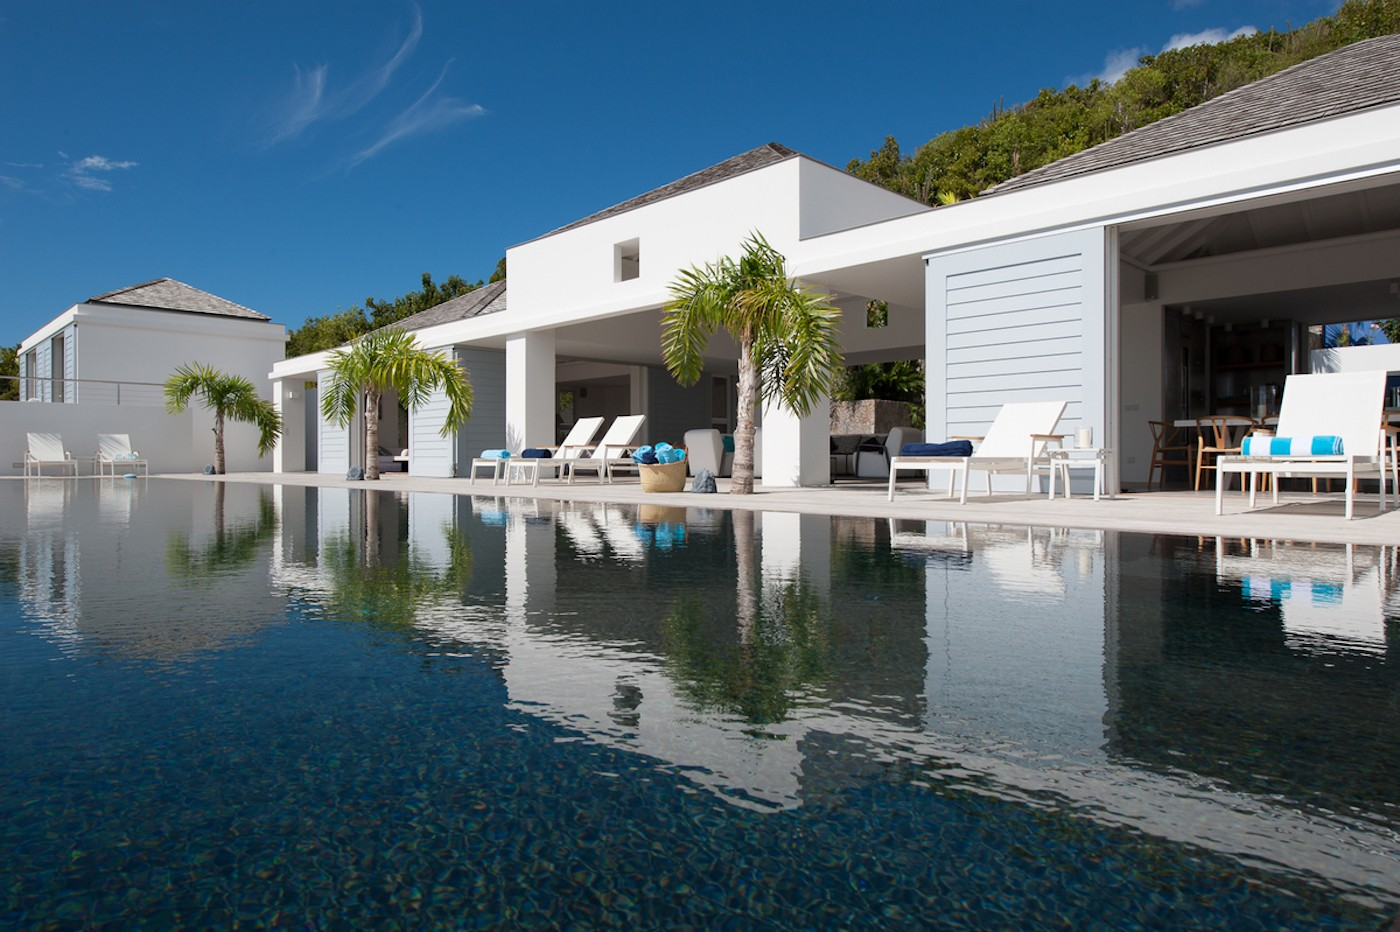 villa jasmine st barts - 4br luxury villa to rent in gouverneur